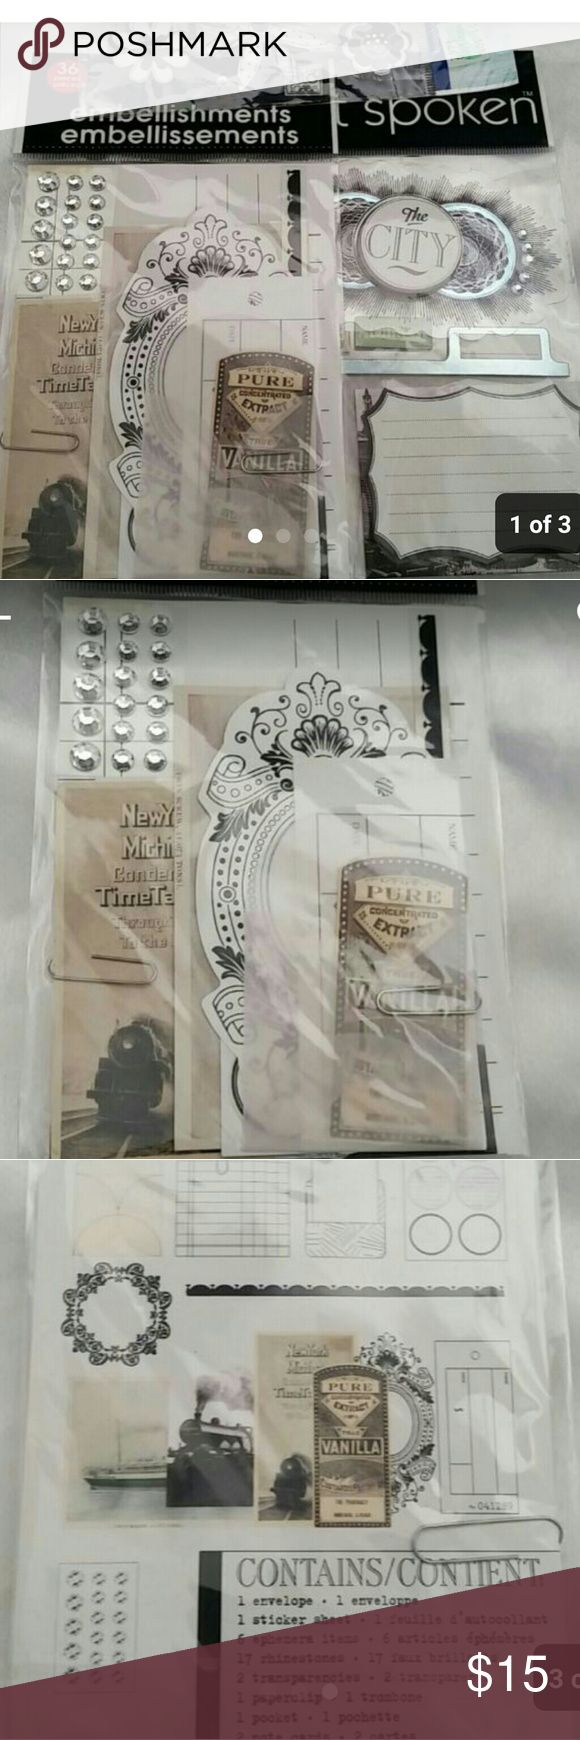 Scrapbooking embellishment kit Hi i have a really pretty scrapbooking kit here all brand new and will also ship out with a free gift the last pic shows what all is included please let me know if you have an offer all reasonable offers will be considerd and of course if you have any questions im happy to help Thanks for taking a look Other